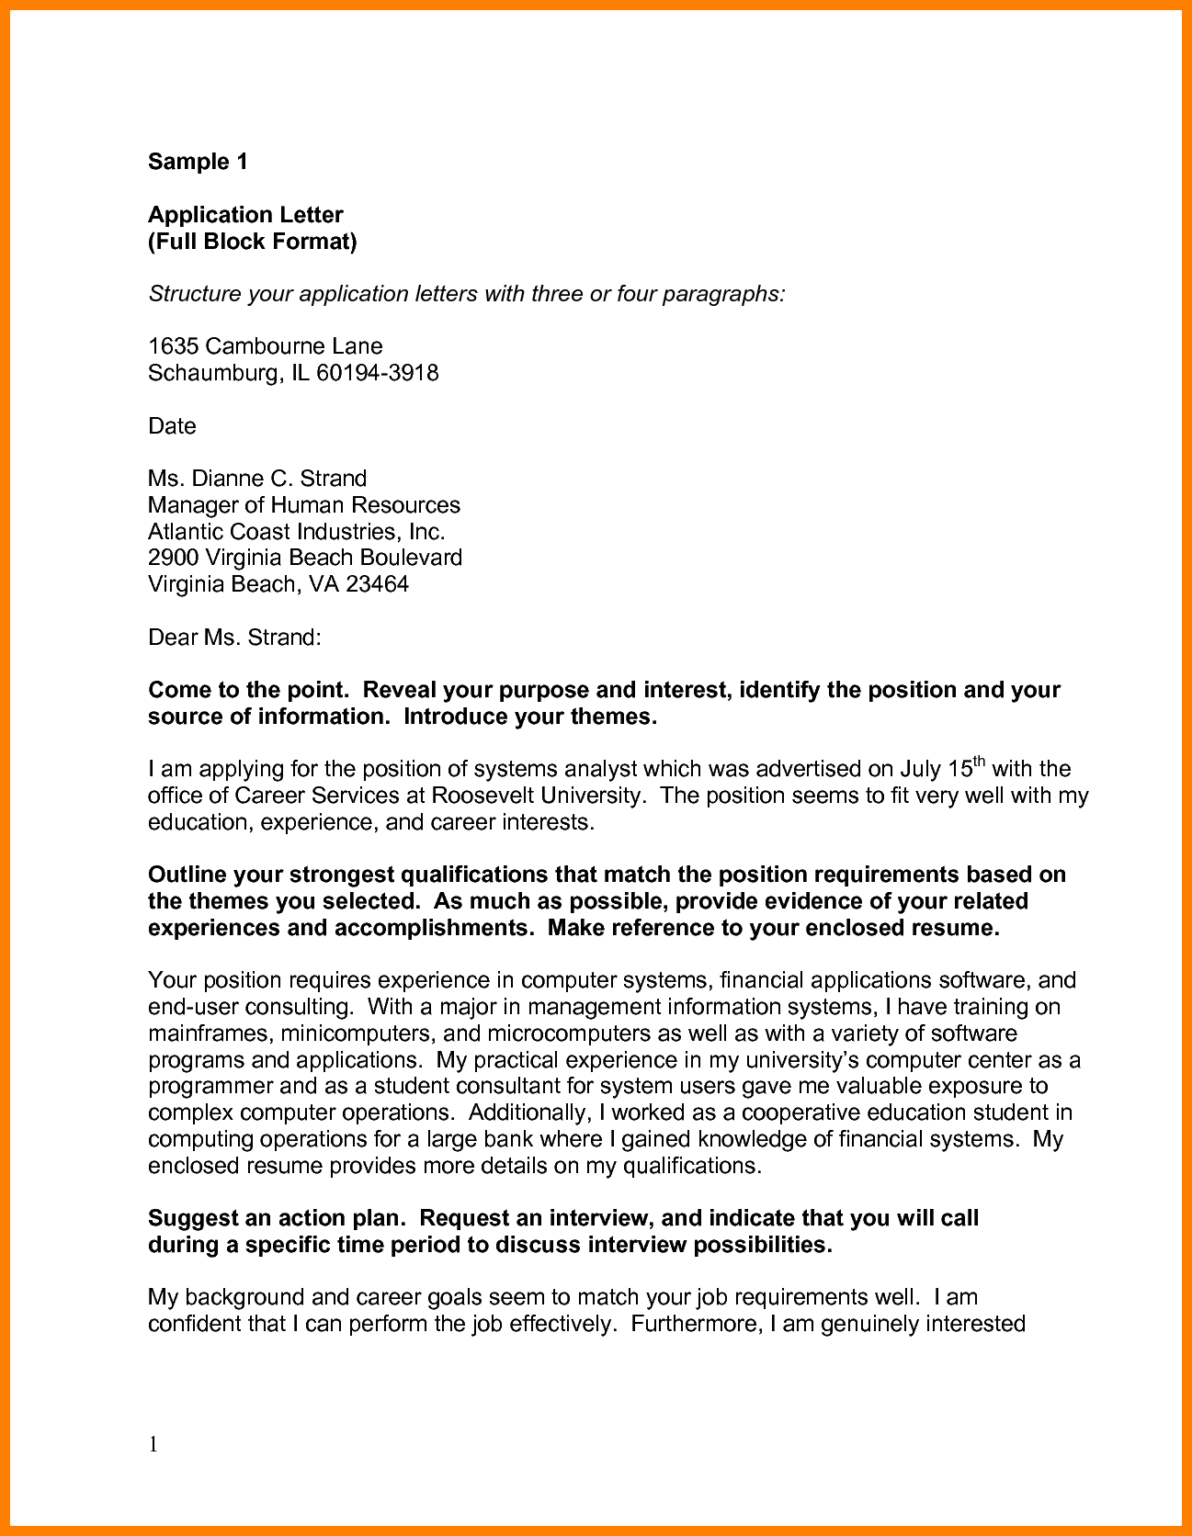 Block Format Cover Letters Calep.midnightpig.co intended